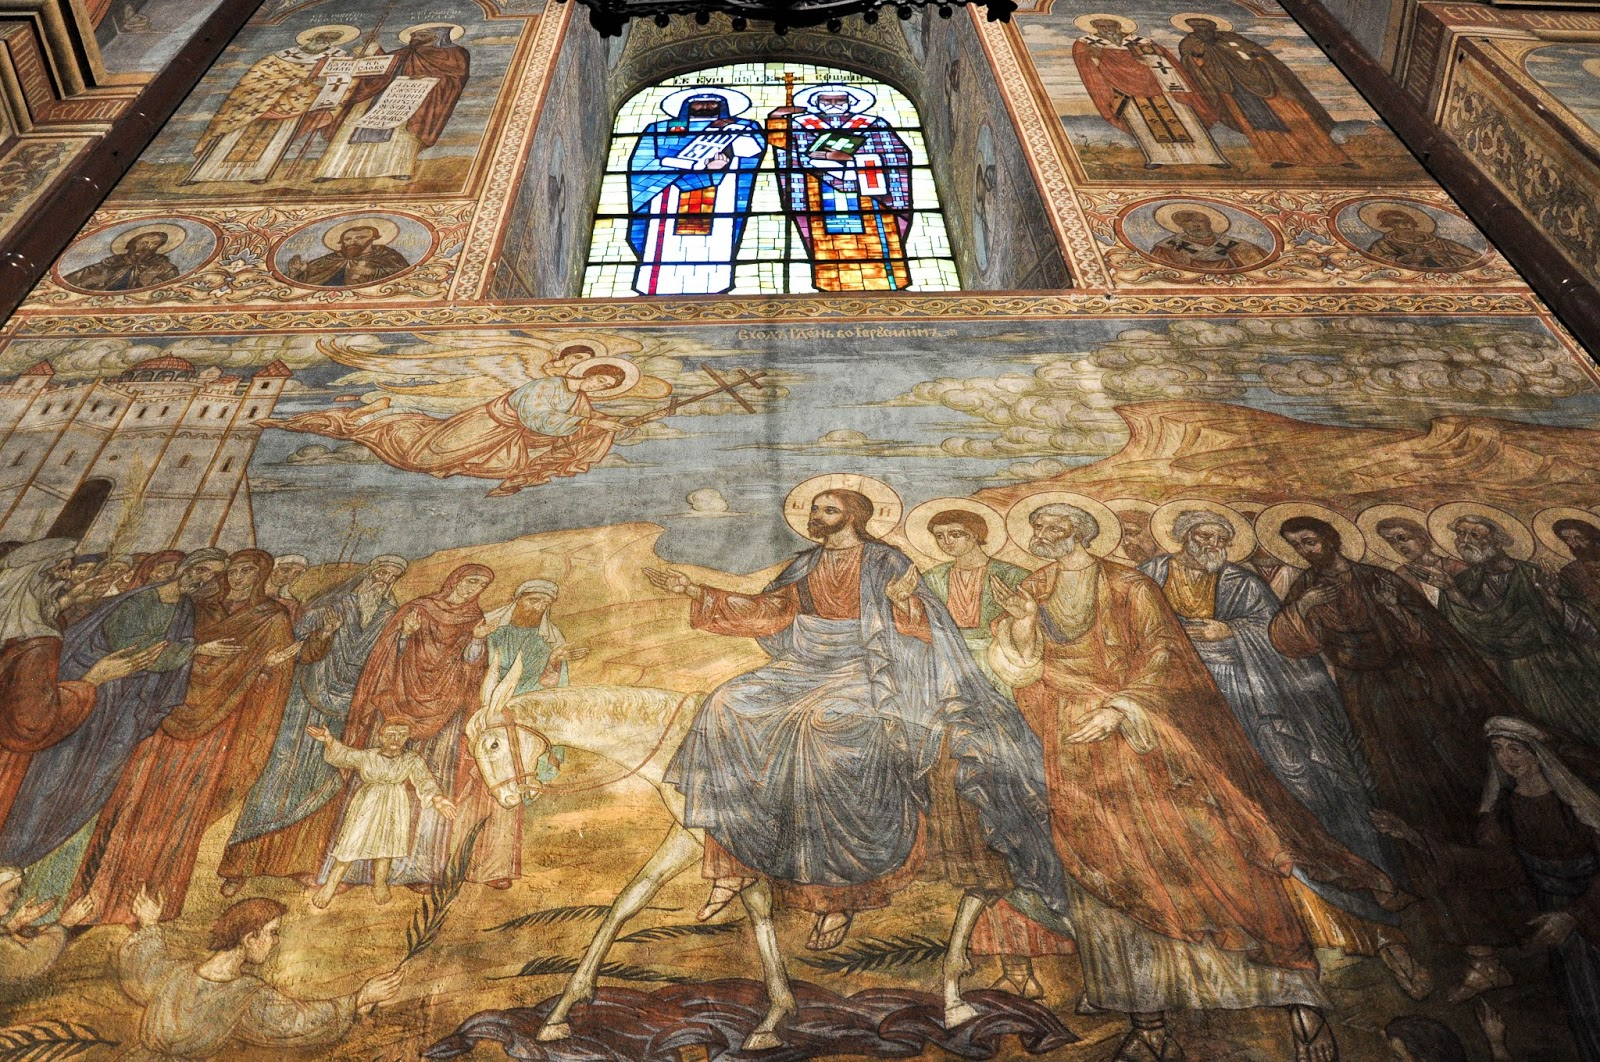 Close-up of the frescoed walls, Dormition of the Mother of God Cathedral, Varna